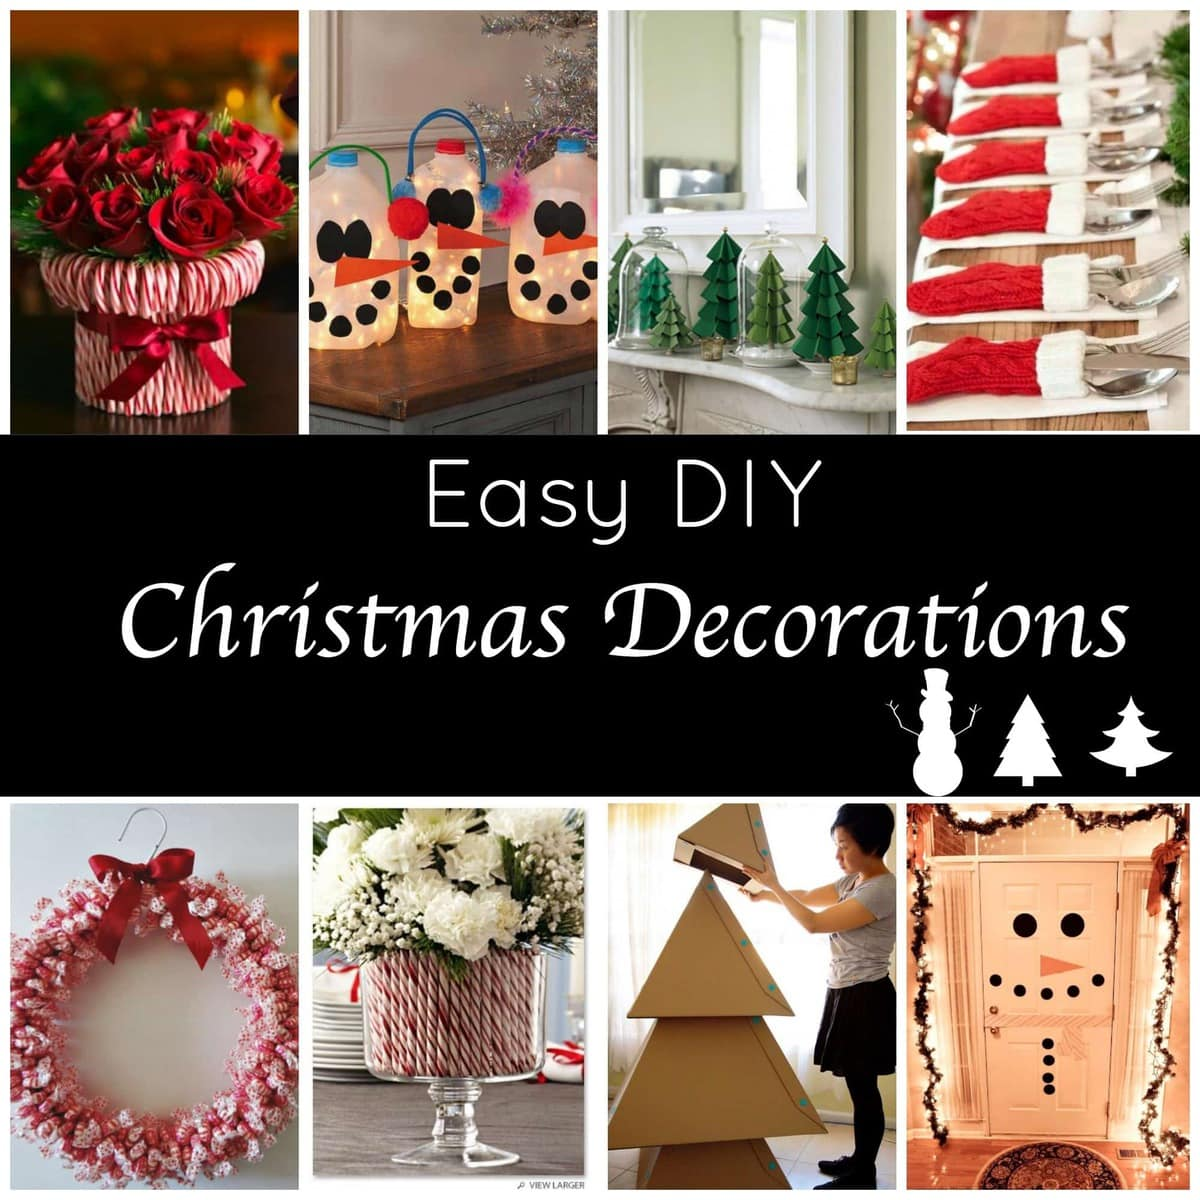 Cute and easy diy holiday decorations for a festive home for Easy to make christmas decorations at home